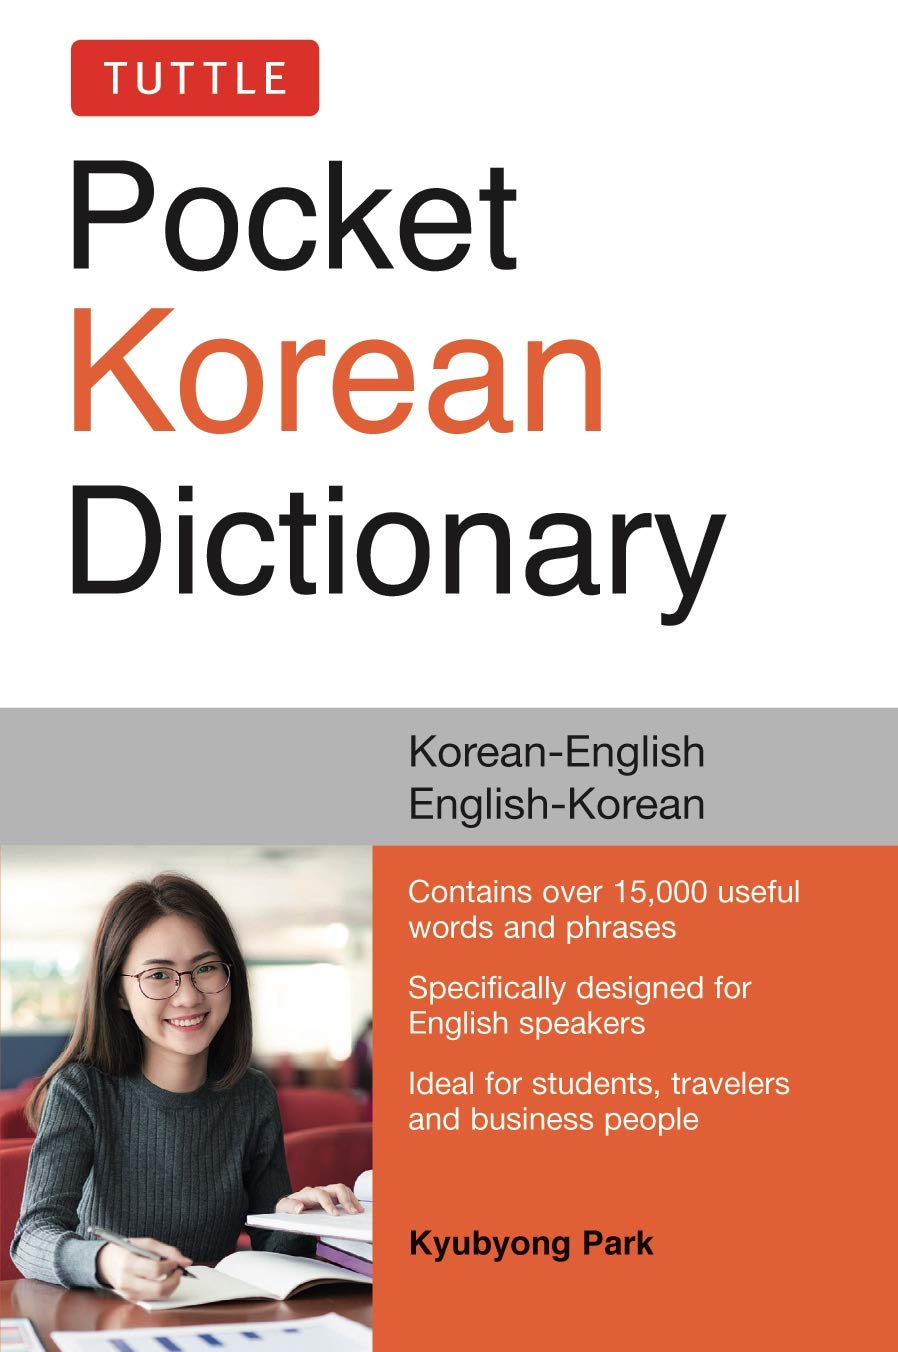 Tuttle Pocket Korean Dictionary: Korean-English, English-Korean